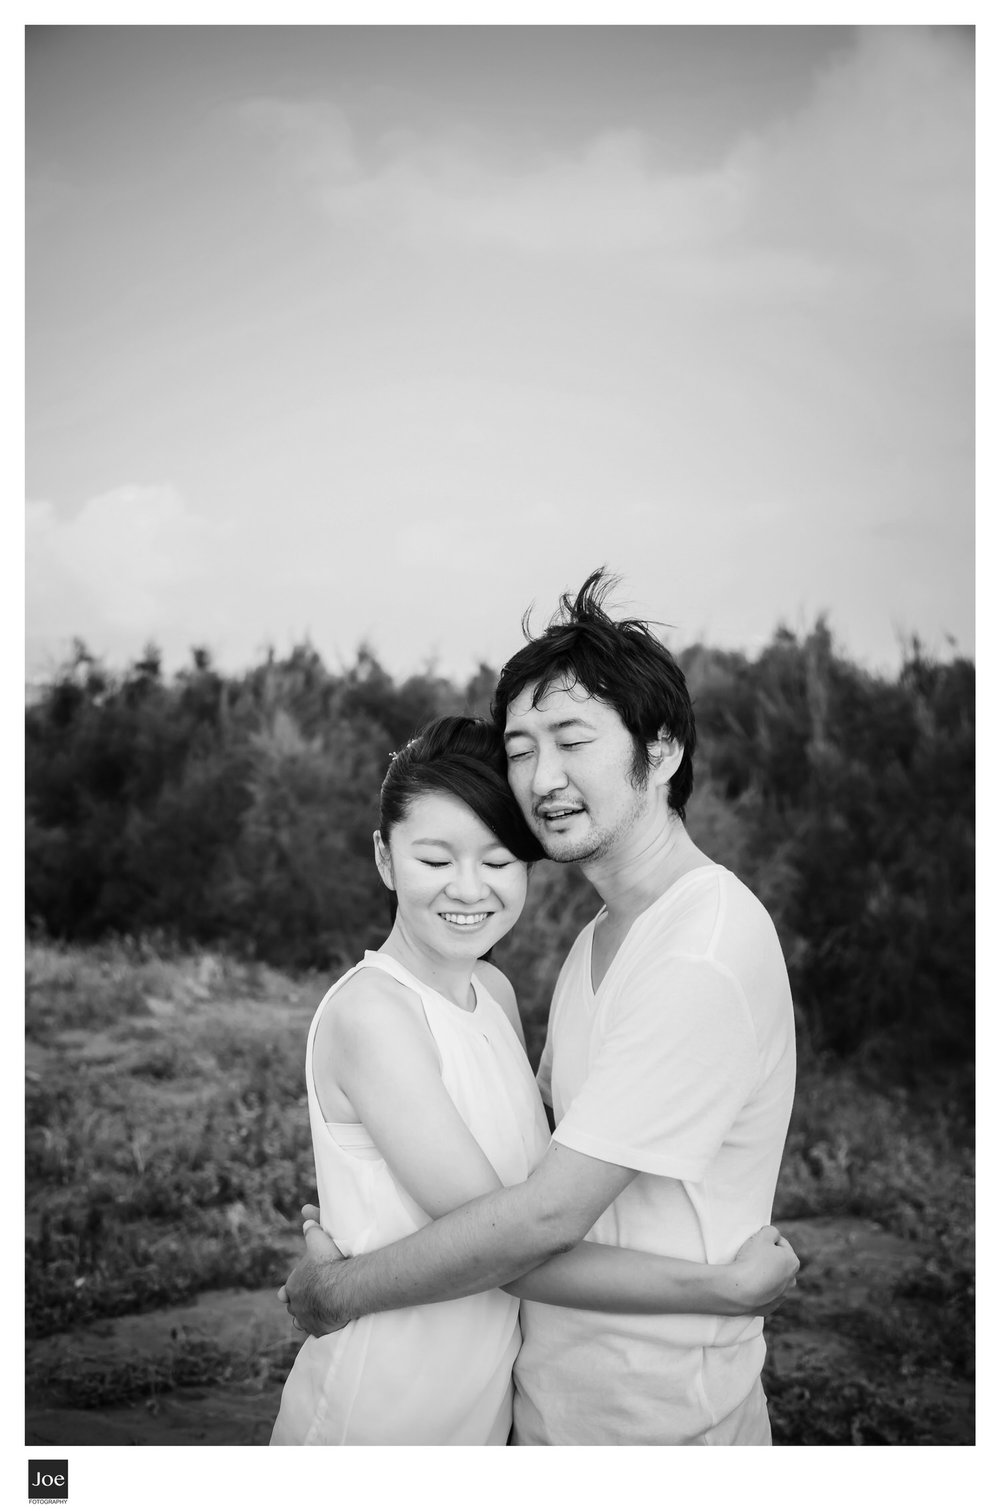 joe-fotography-engagement-photo-takeshi-tingting-45.jpg